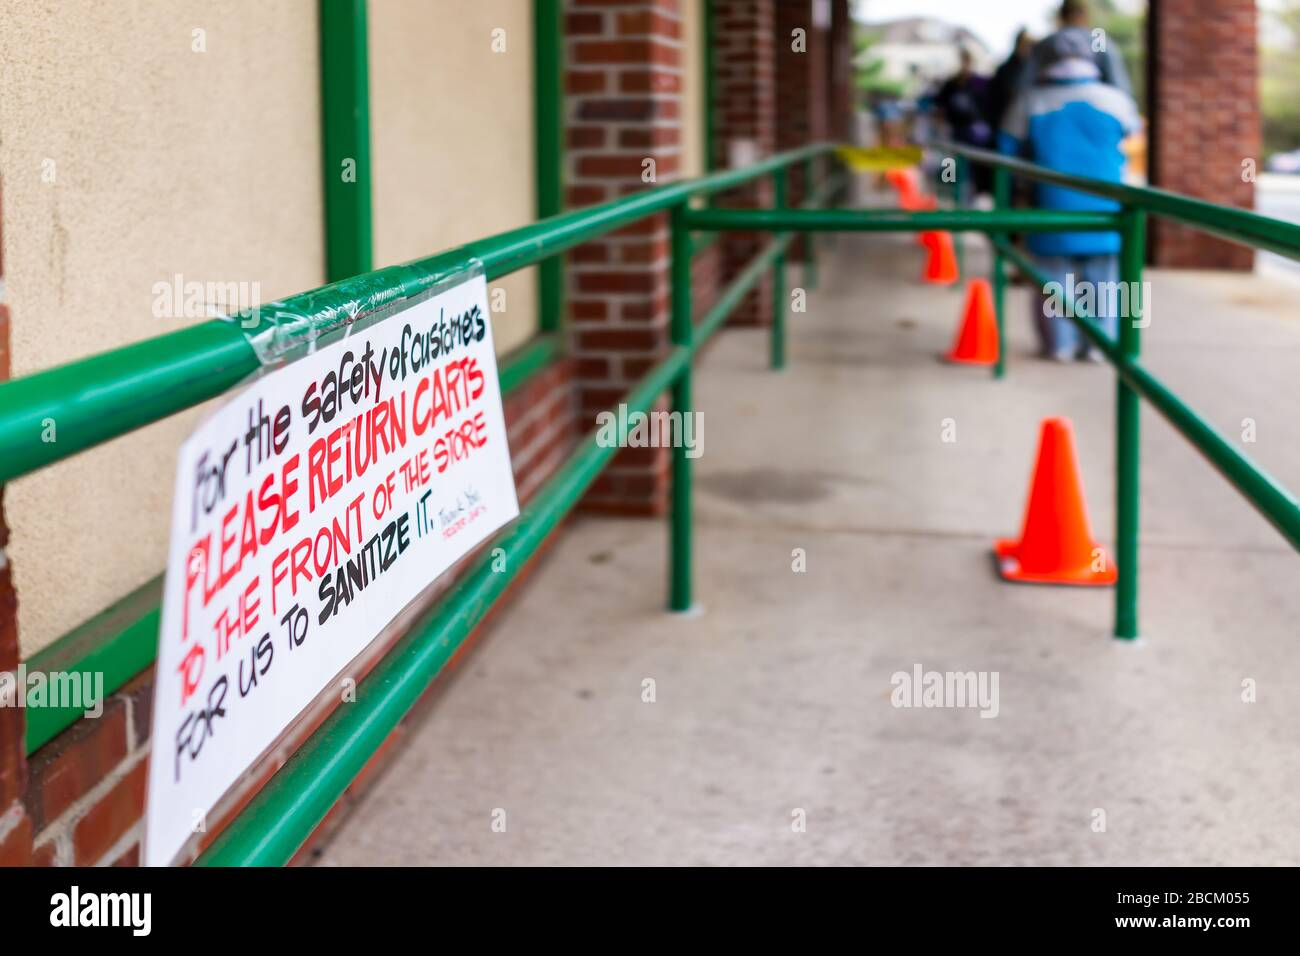 Reston, USA - April 1, 2020: Trader Joe's grocery store sign for customers to return shopping carts to store front to clean, for cleaning and sanitizi Stock Photo